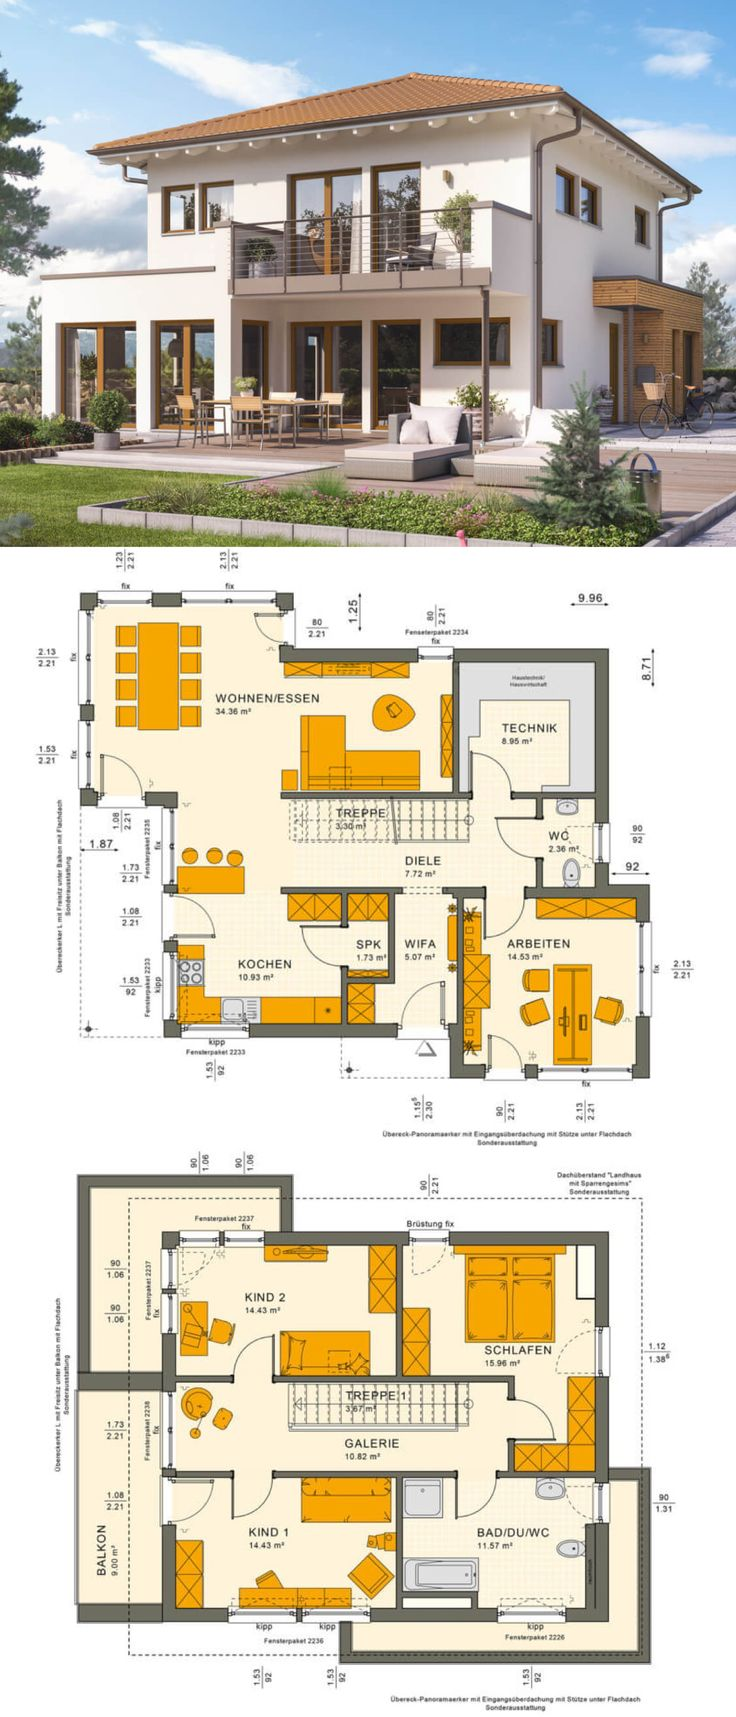 Urban villa Mediterranean country house with hipped roof Architecture & bay window with loggia – Single-family house building Ideas Floor plan Prefabricated house Sunshine 144 V6 Living Haus – HausbauDirekt.de